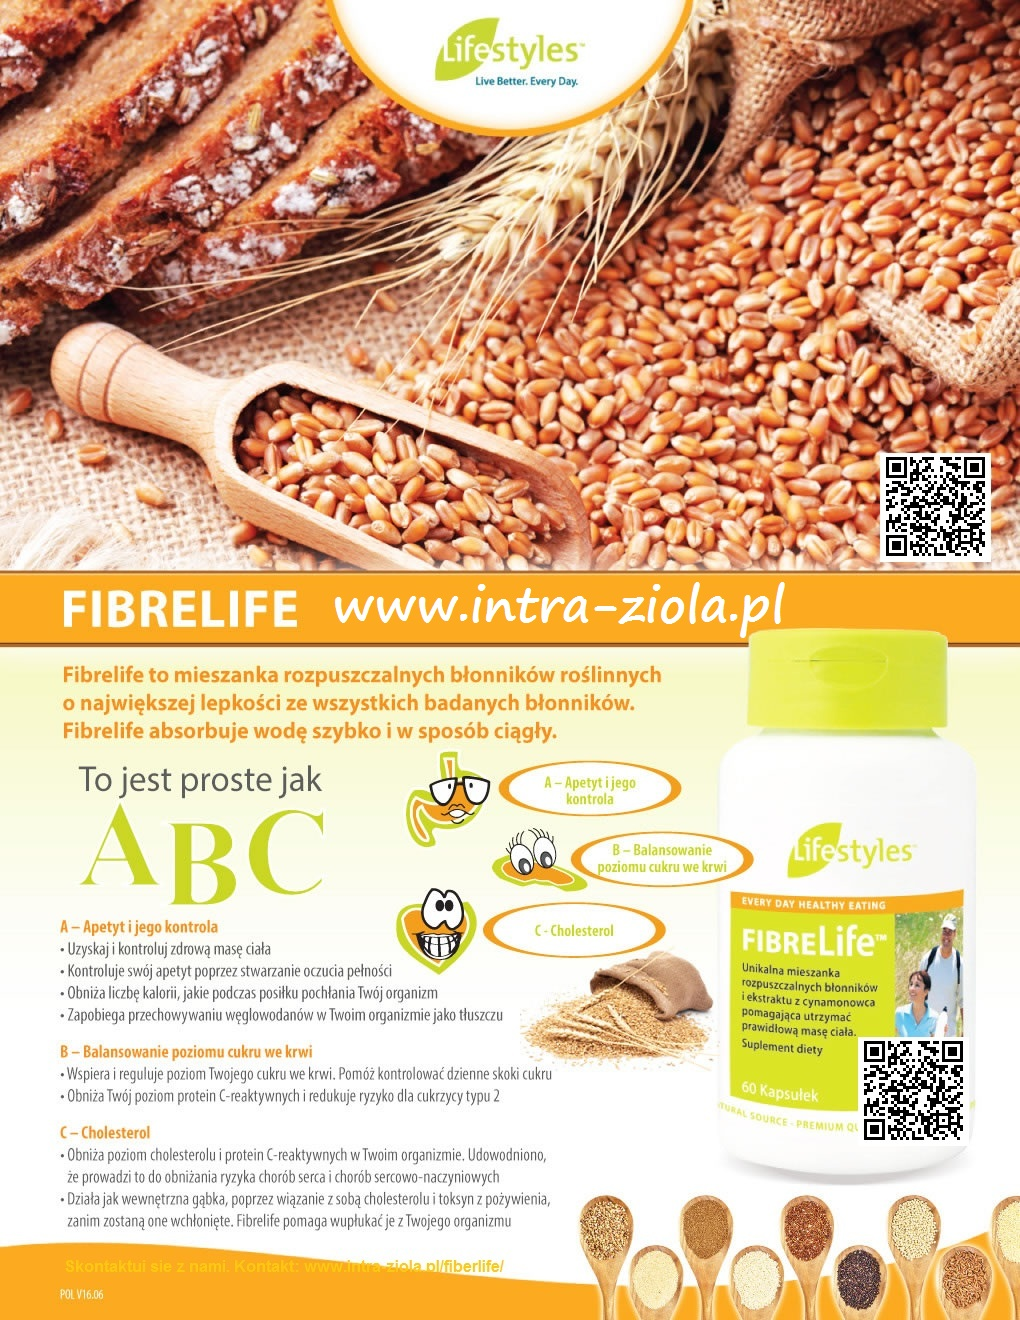 fiberlife lifestyles poland